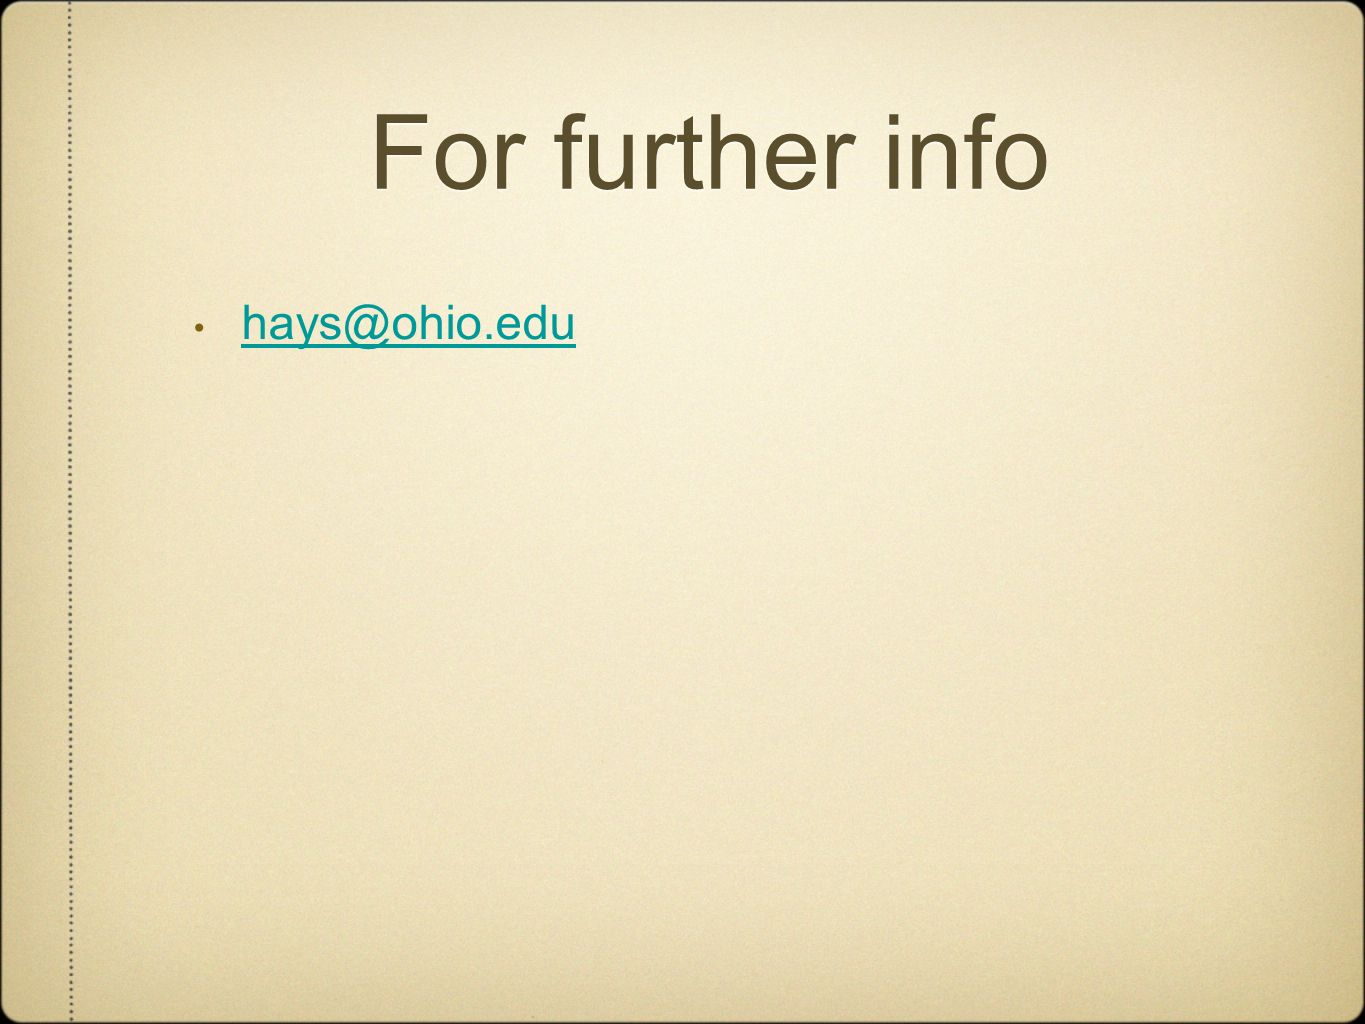 For further info hays@ohio.edu